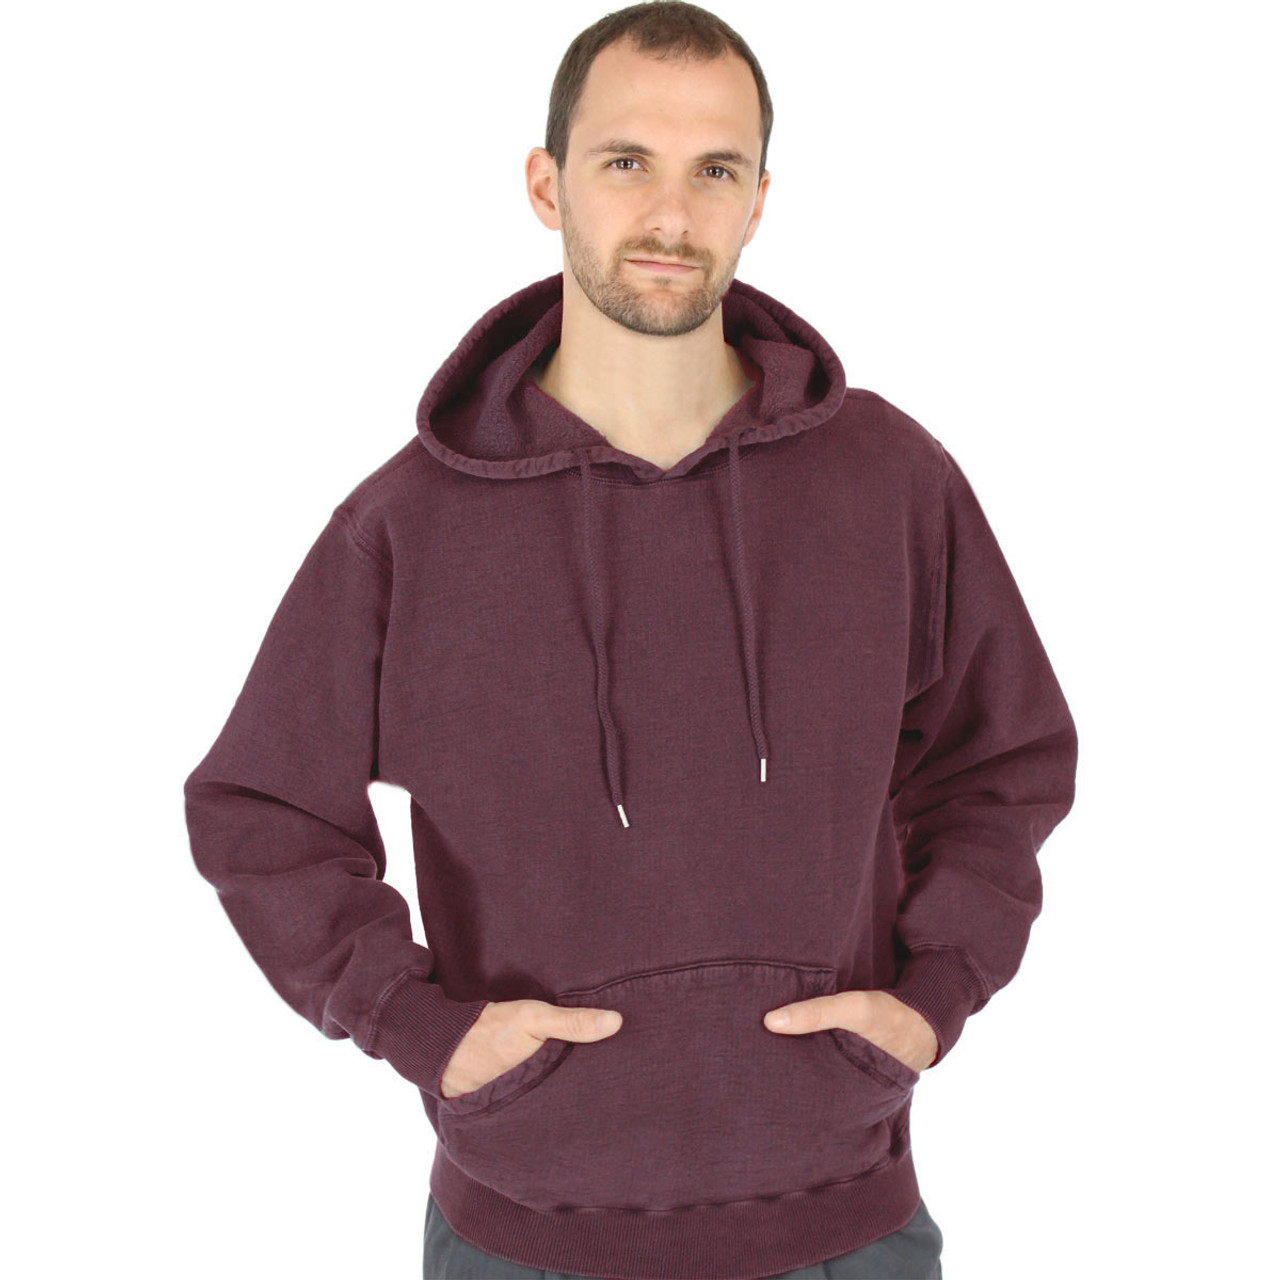 16257fe3e CottonMill 100% Heavy Cotton Mens Hooded Pullover Hoodie Sweatshirt ...